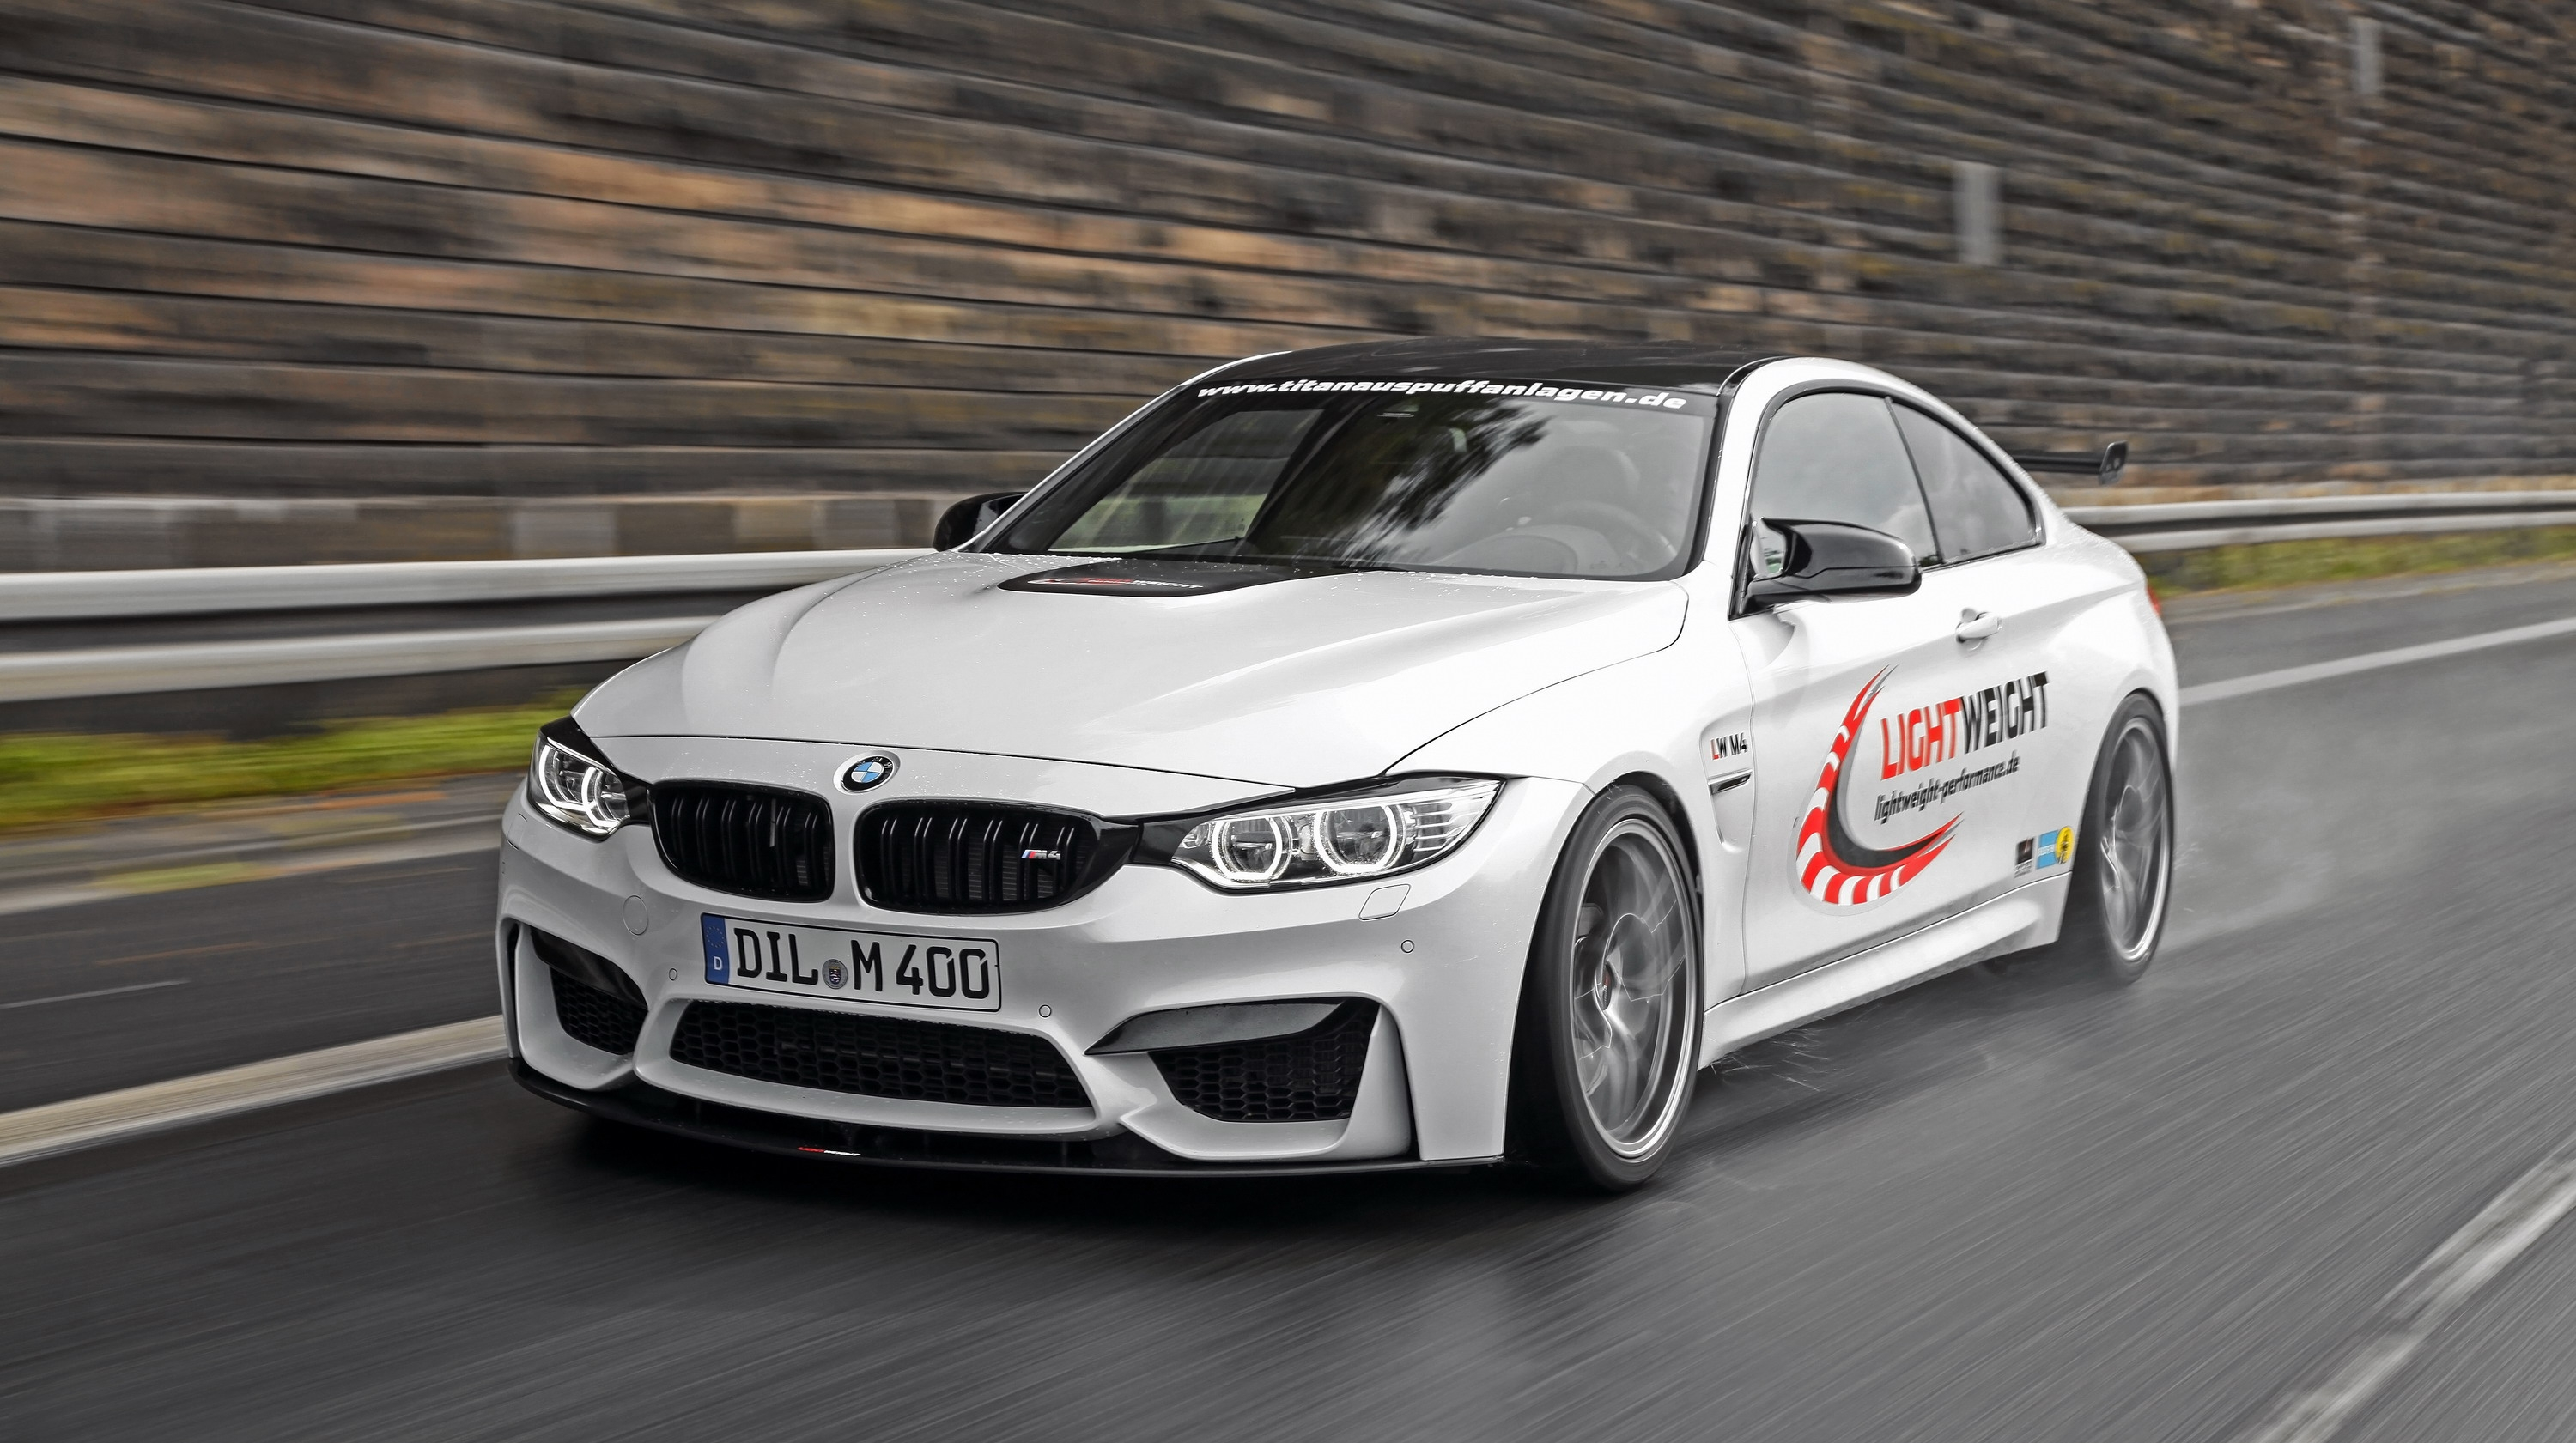 2014 bmw m4 by lightweight review gallery top speed. Black Bedroom Furniture Sets. Home Design Ideas